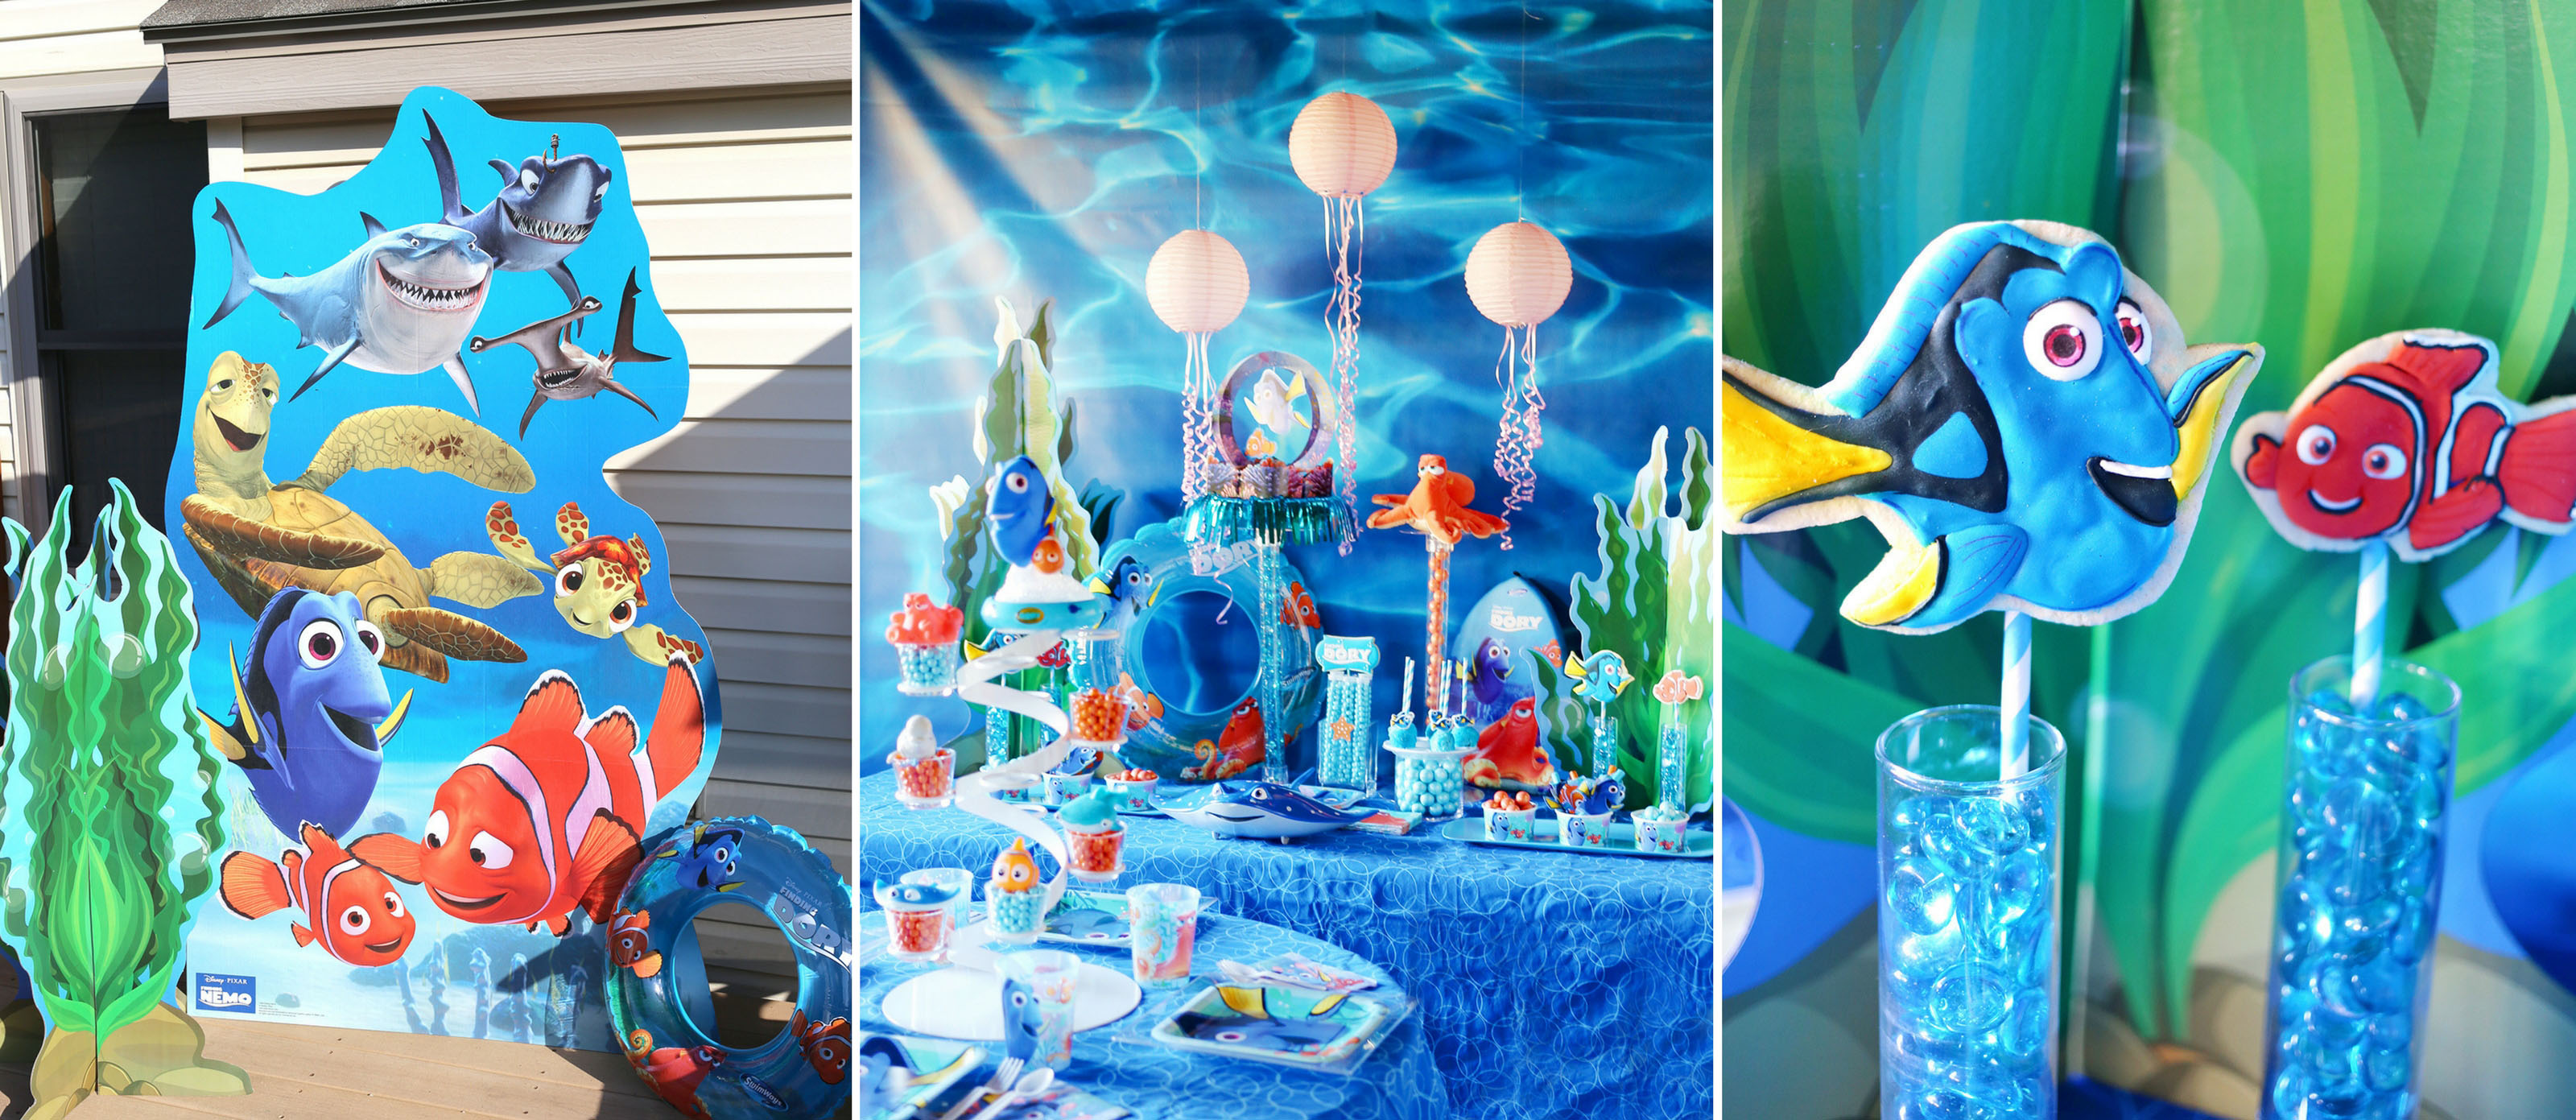 Finding Dory Inspired Pool Party Fun365